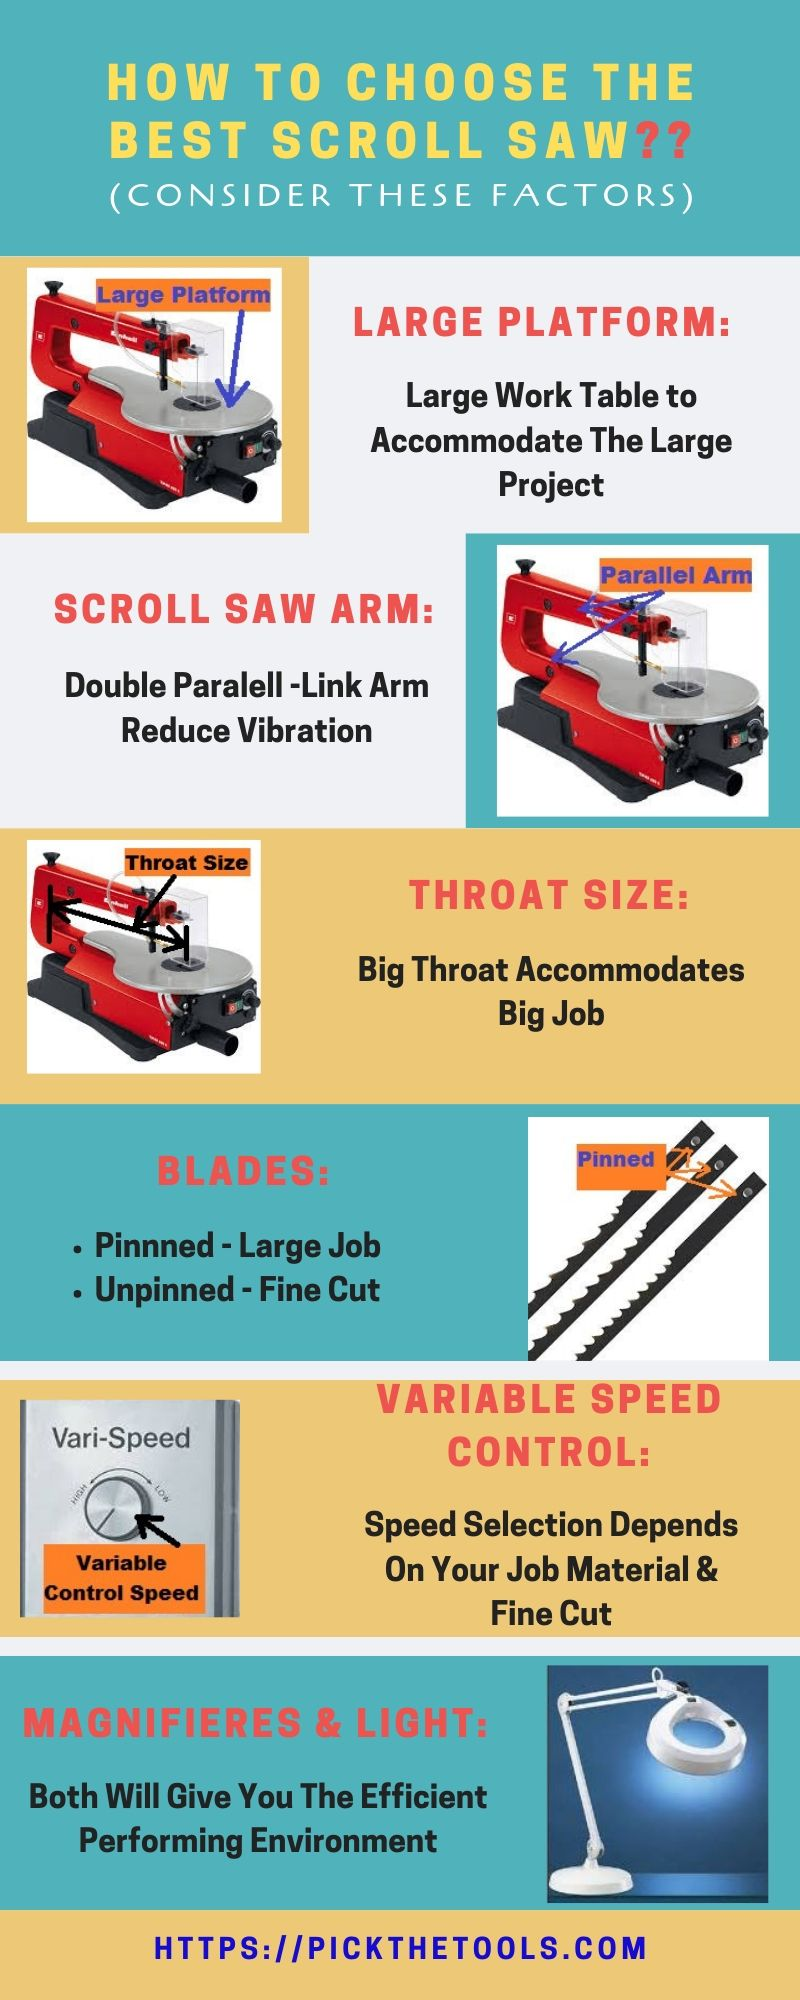 how to choose the best scroll saw